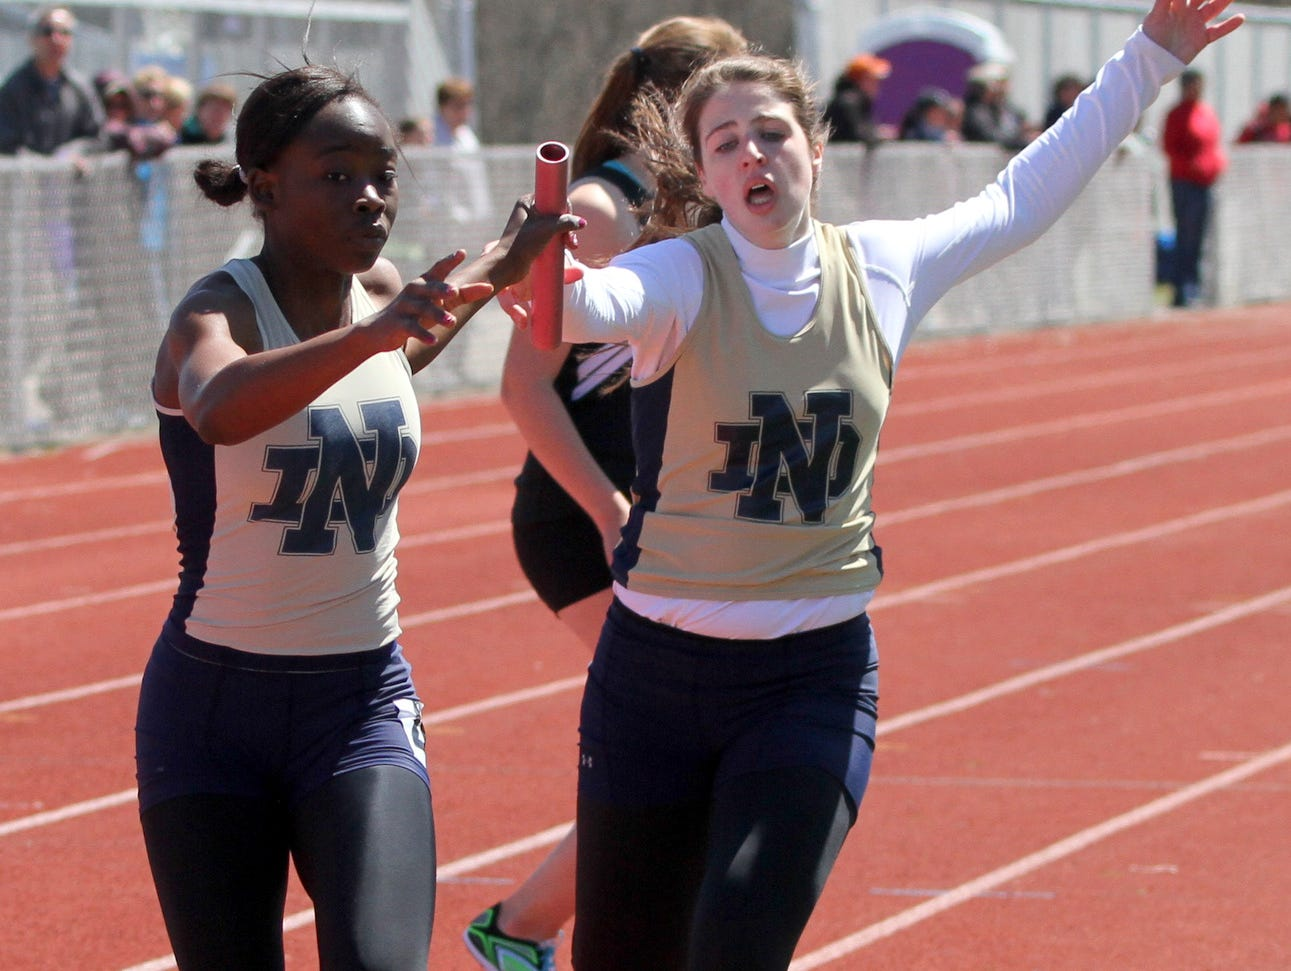 Deb Diarra takes the baton for Notre Dame during a win in the 3,200 relay earlier this season at the Waite-Molnar Invitational at Ernie Davis Academy. The Crusaders will try for their third straight girls Large School title on Thursday and Friday at Trumansburg High School.